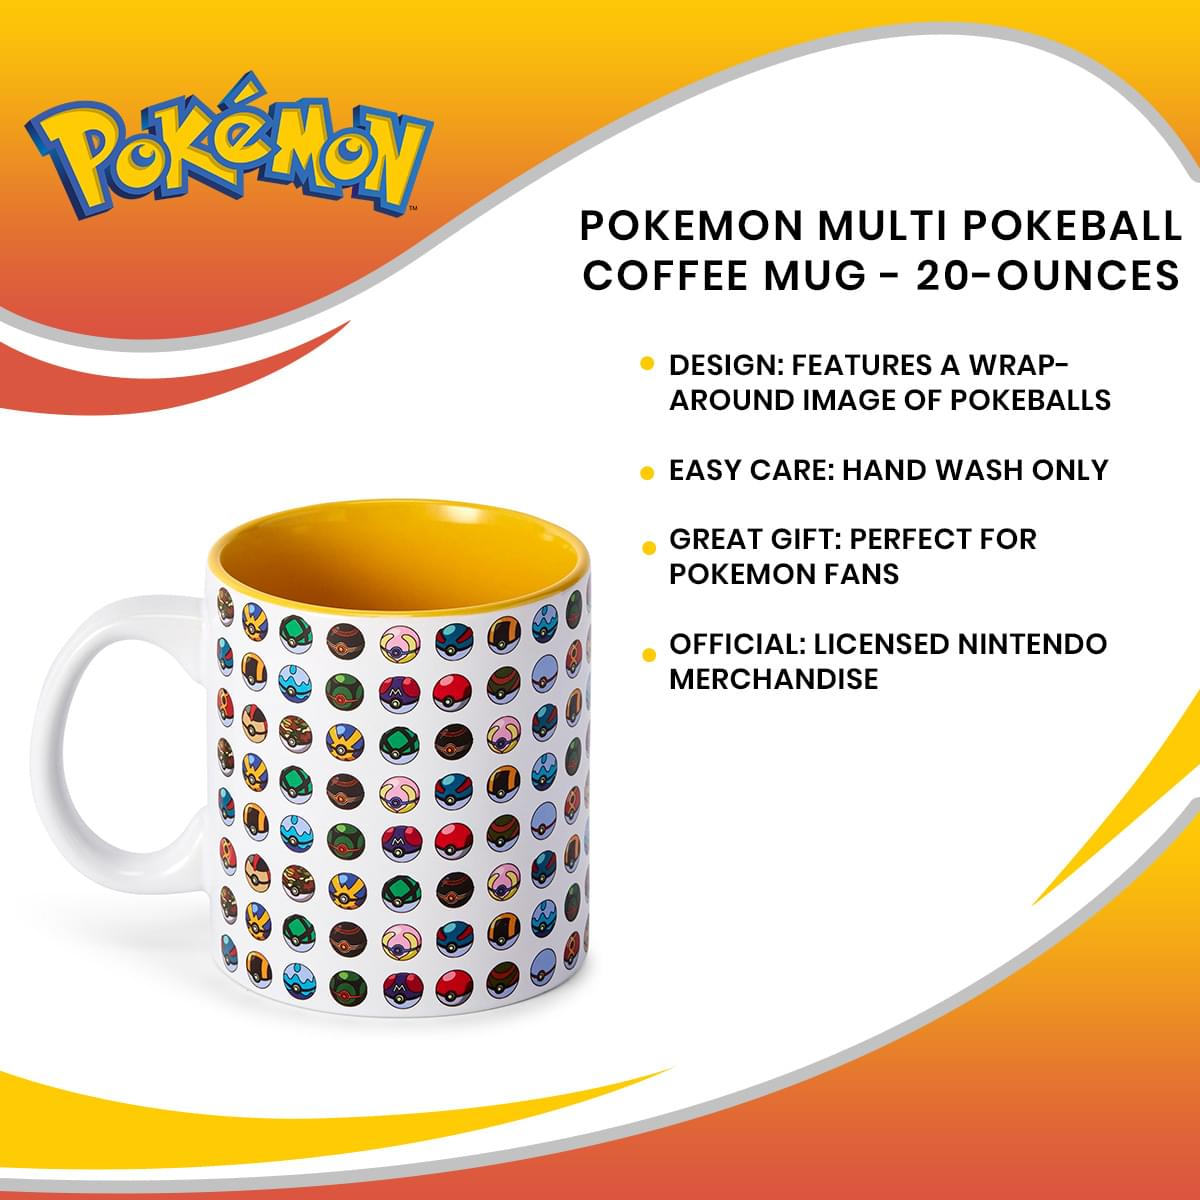 Pokemon Multi Pokeball Coffee Mug - 20-Ounces